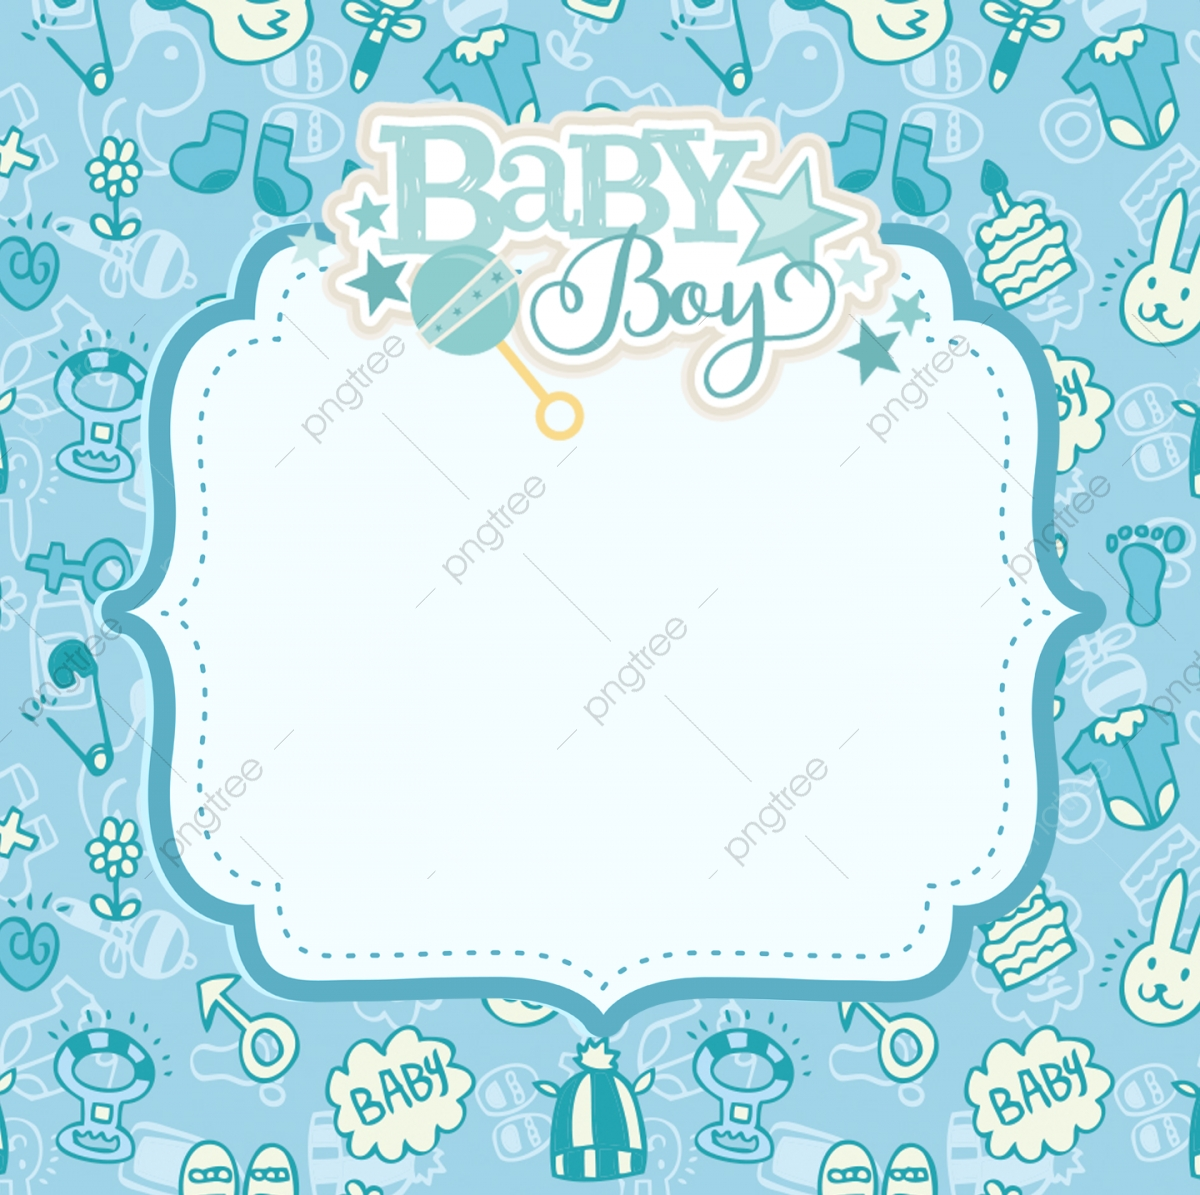 Baby Boy Png Backgrounds & Free Baby Boy Backgrounds.png.